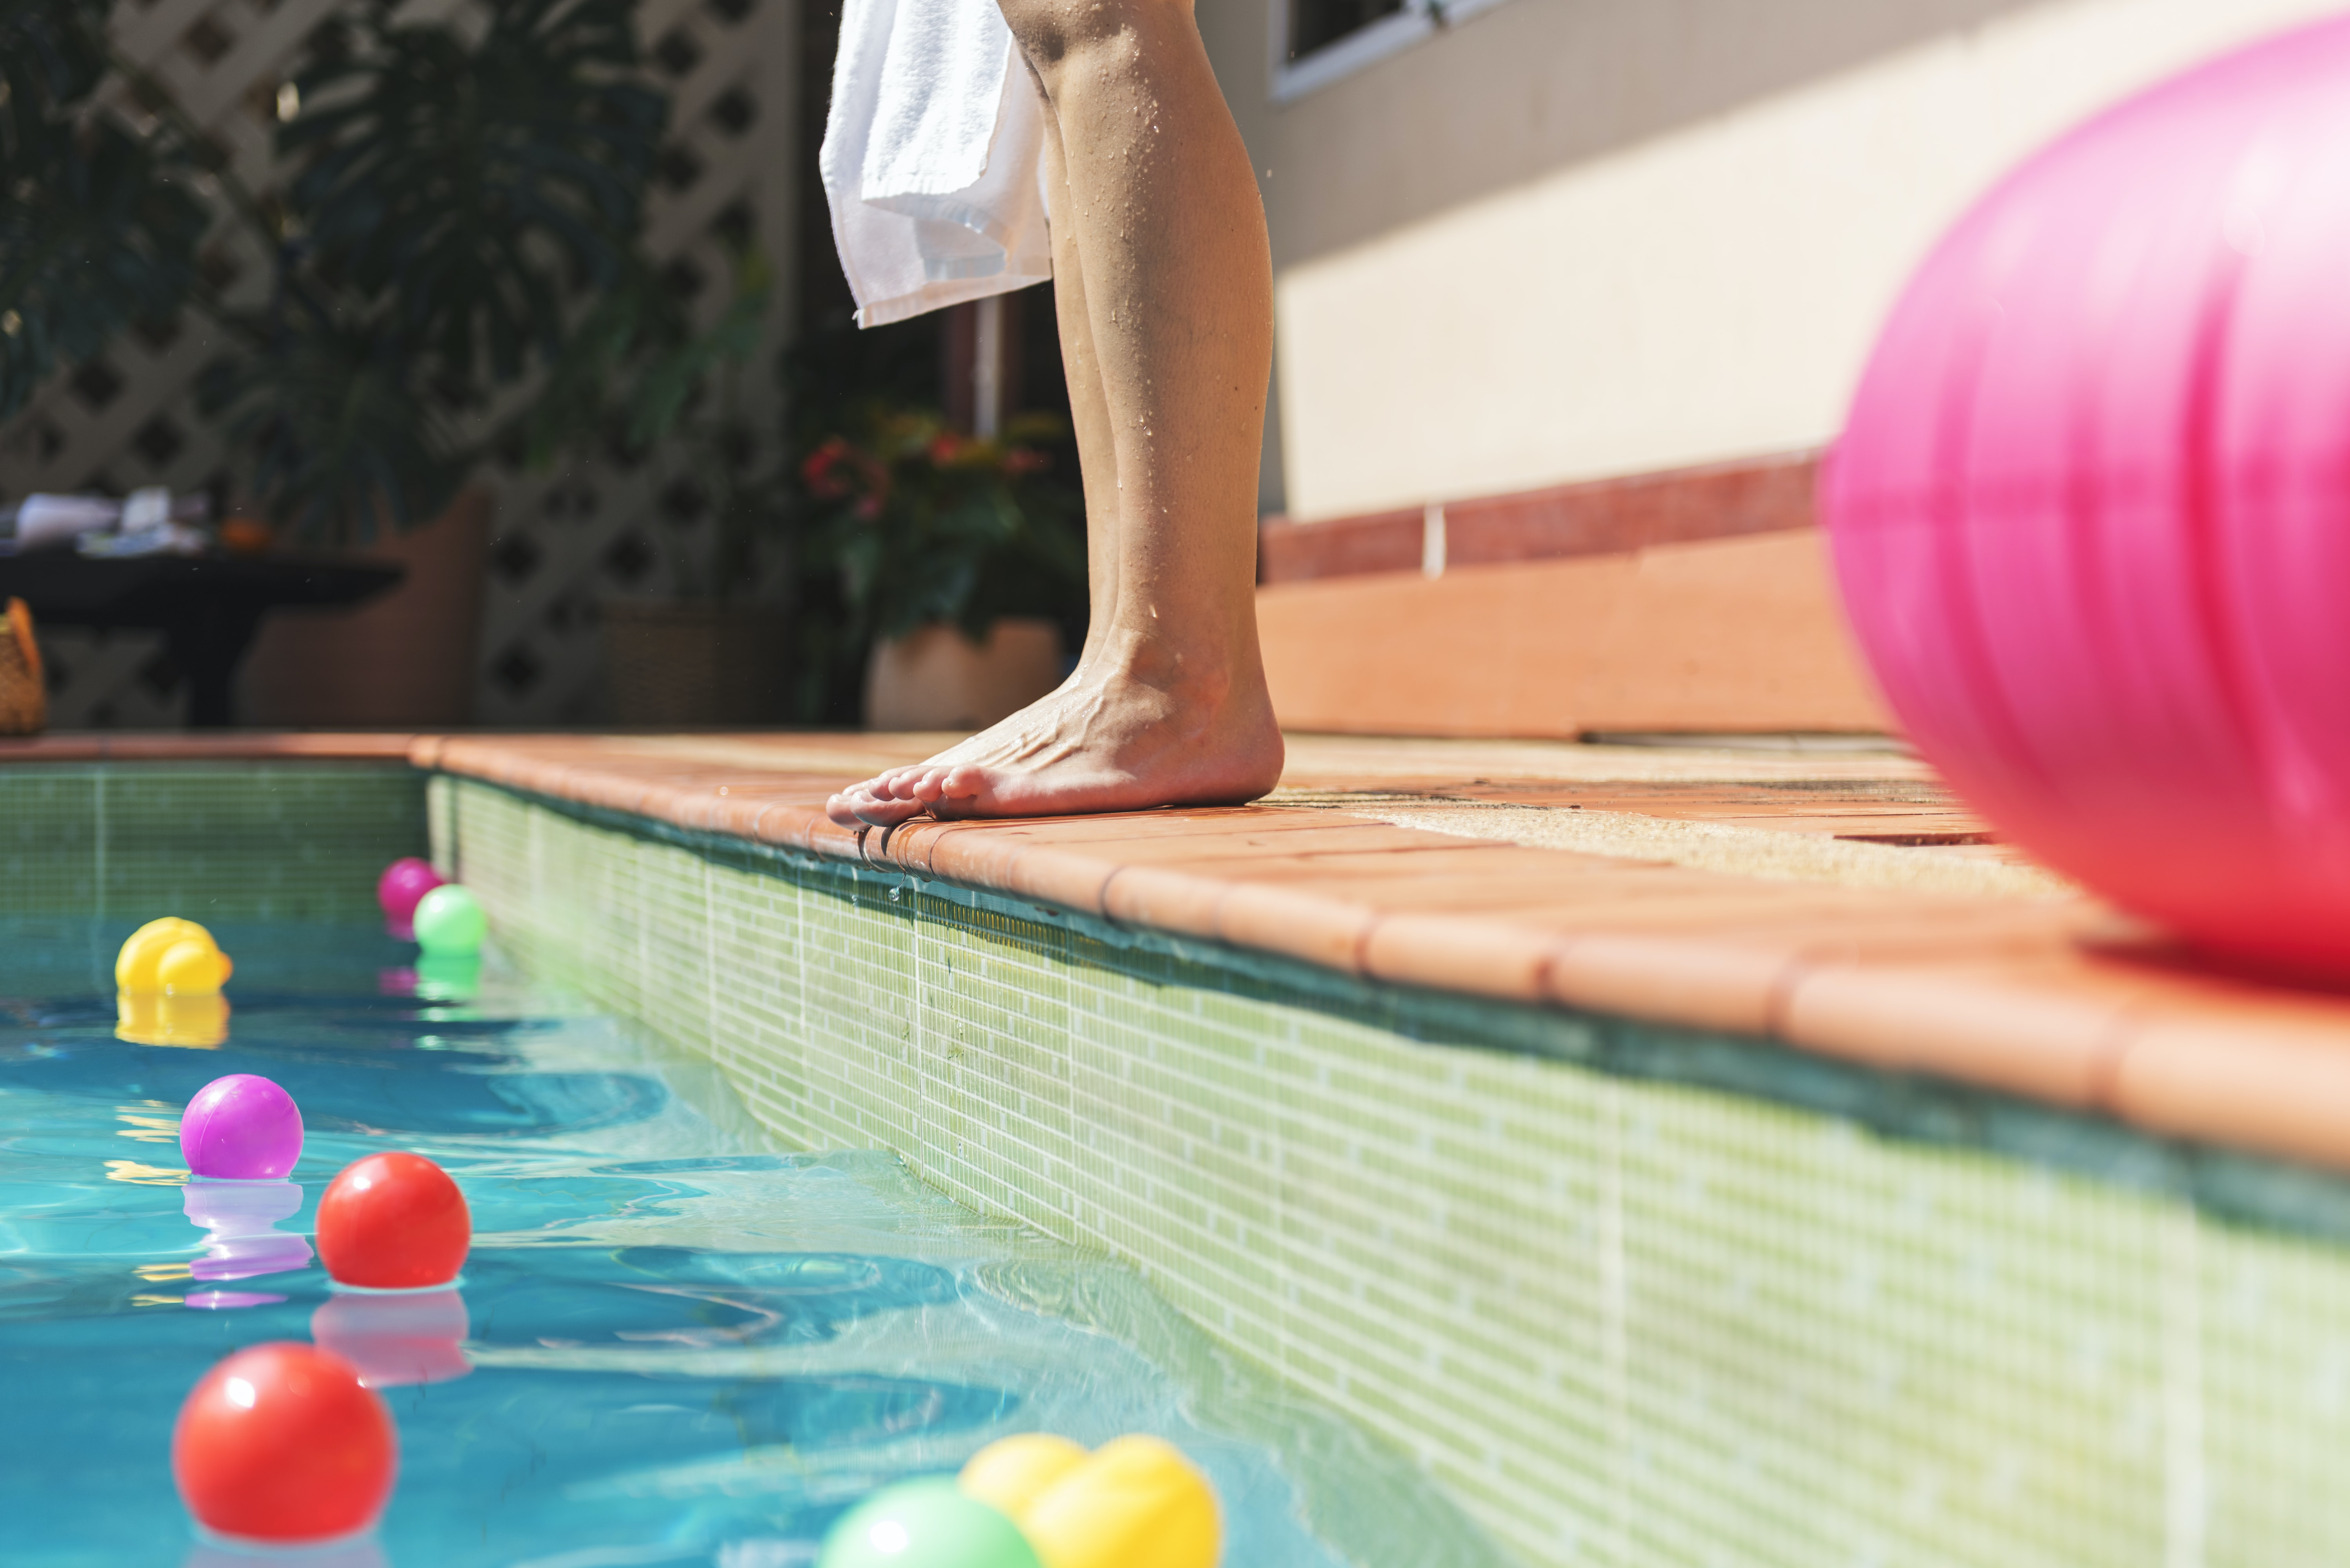 person standing near pool near pink inflatable ball during daytime